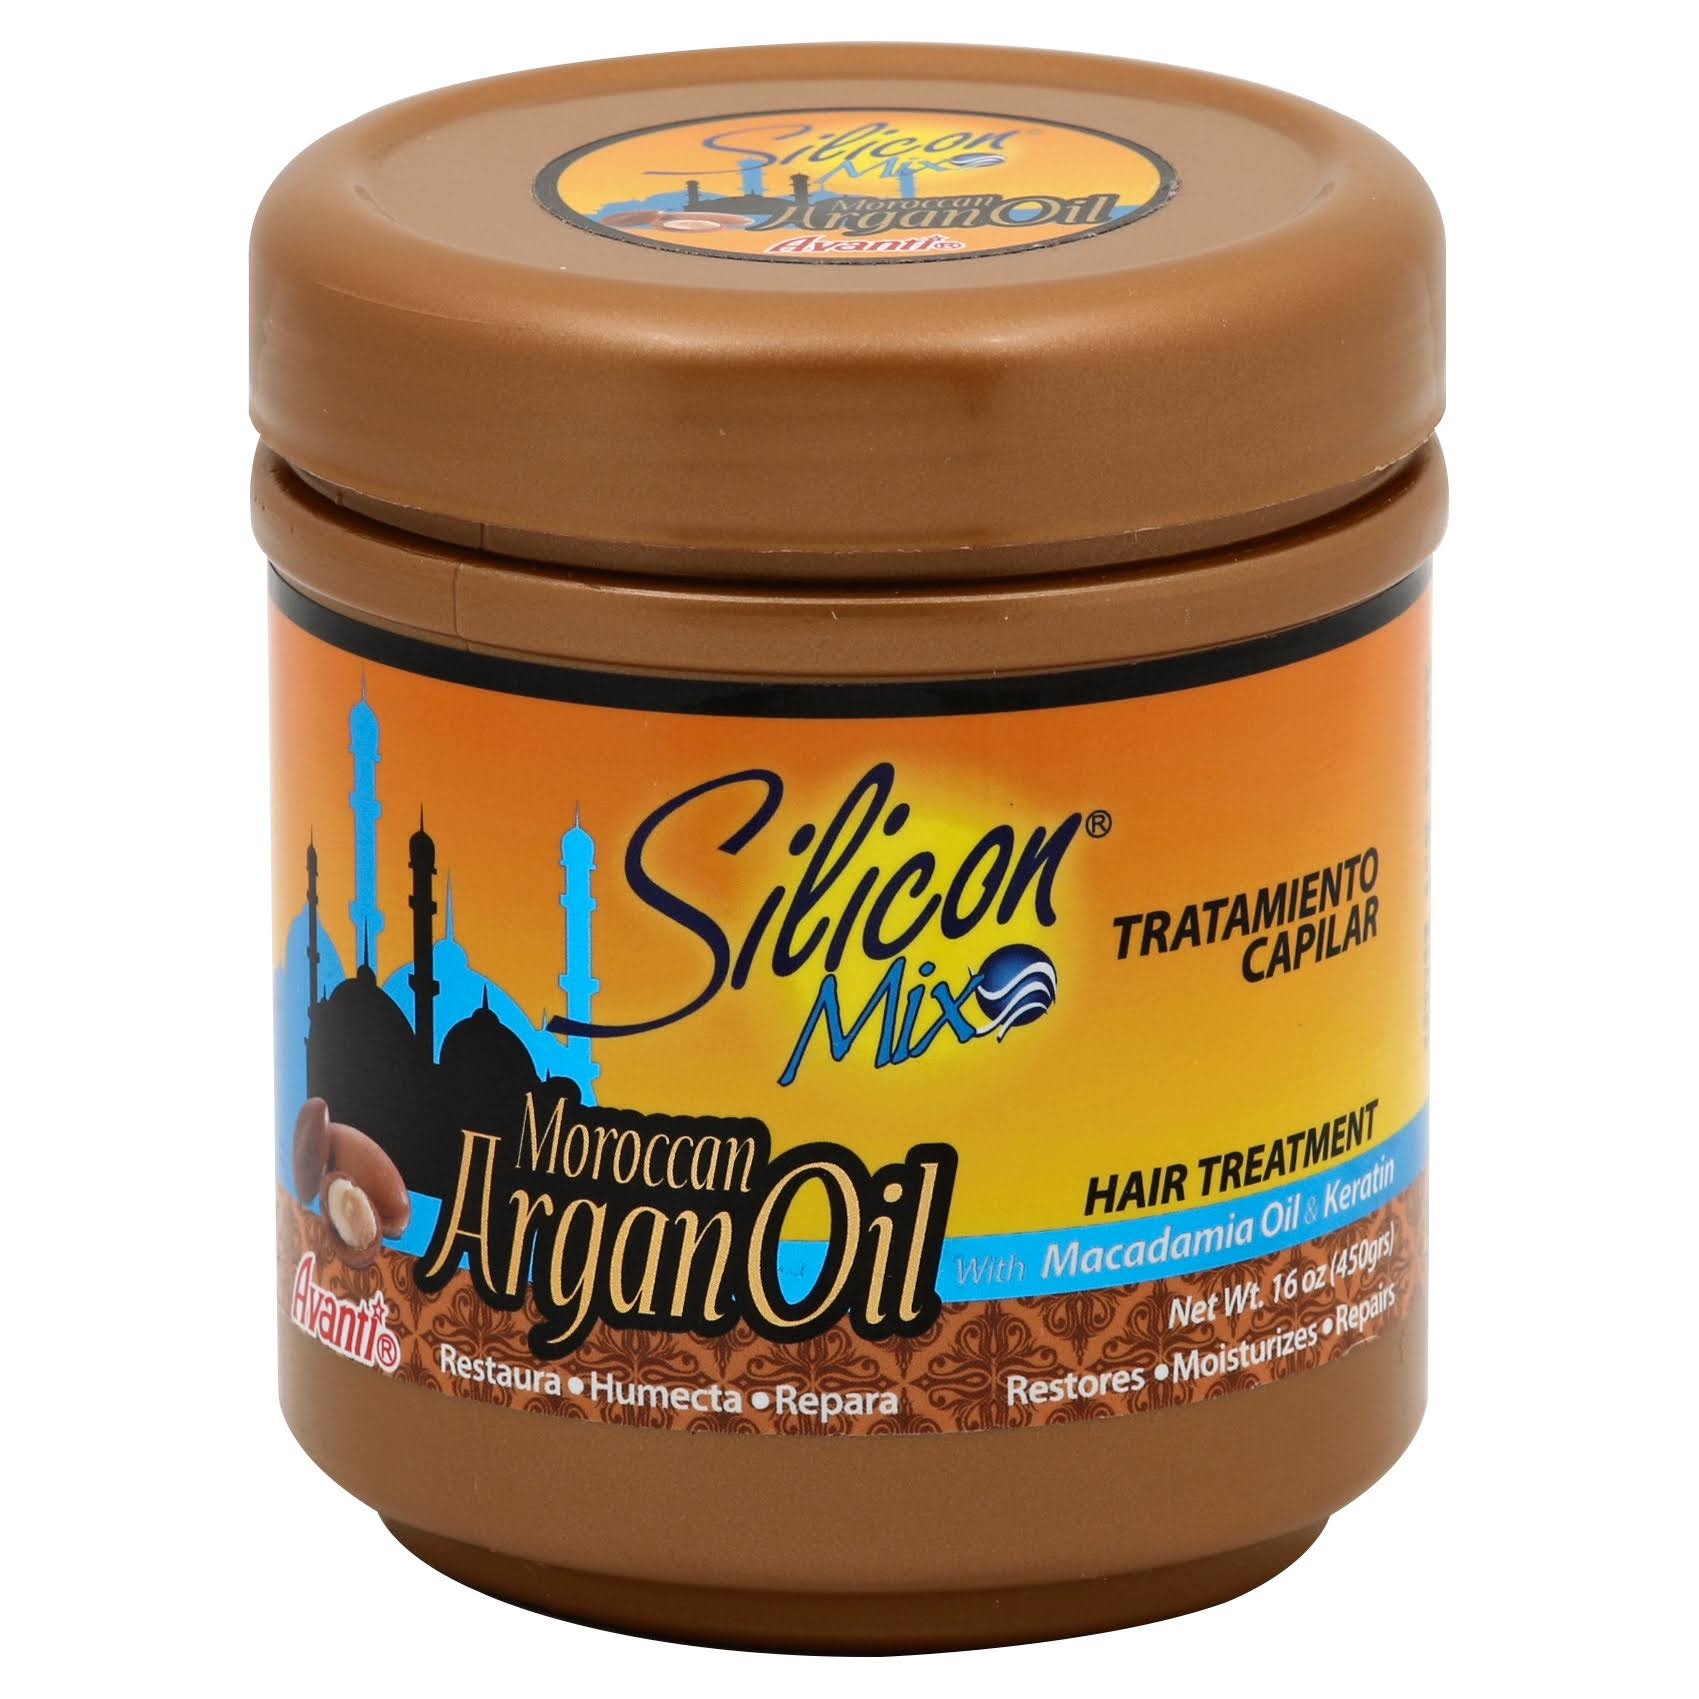 Silicon Mix Moroccan Argan Oil Intensive Hair Treatment - 16oz